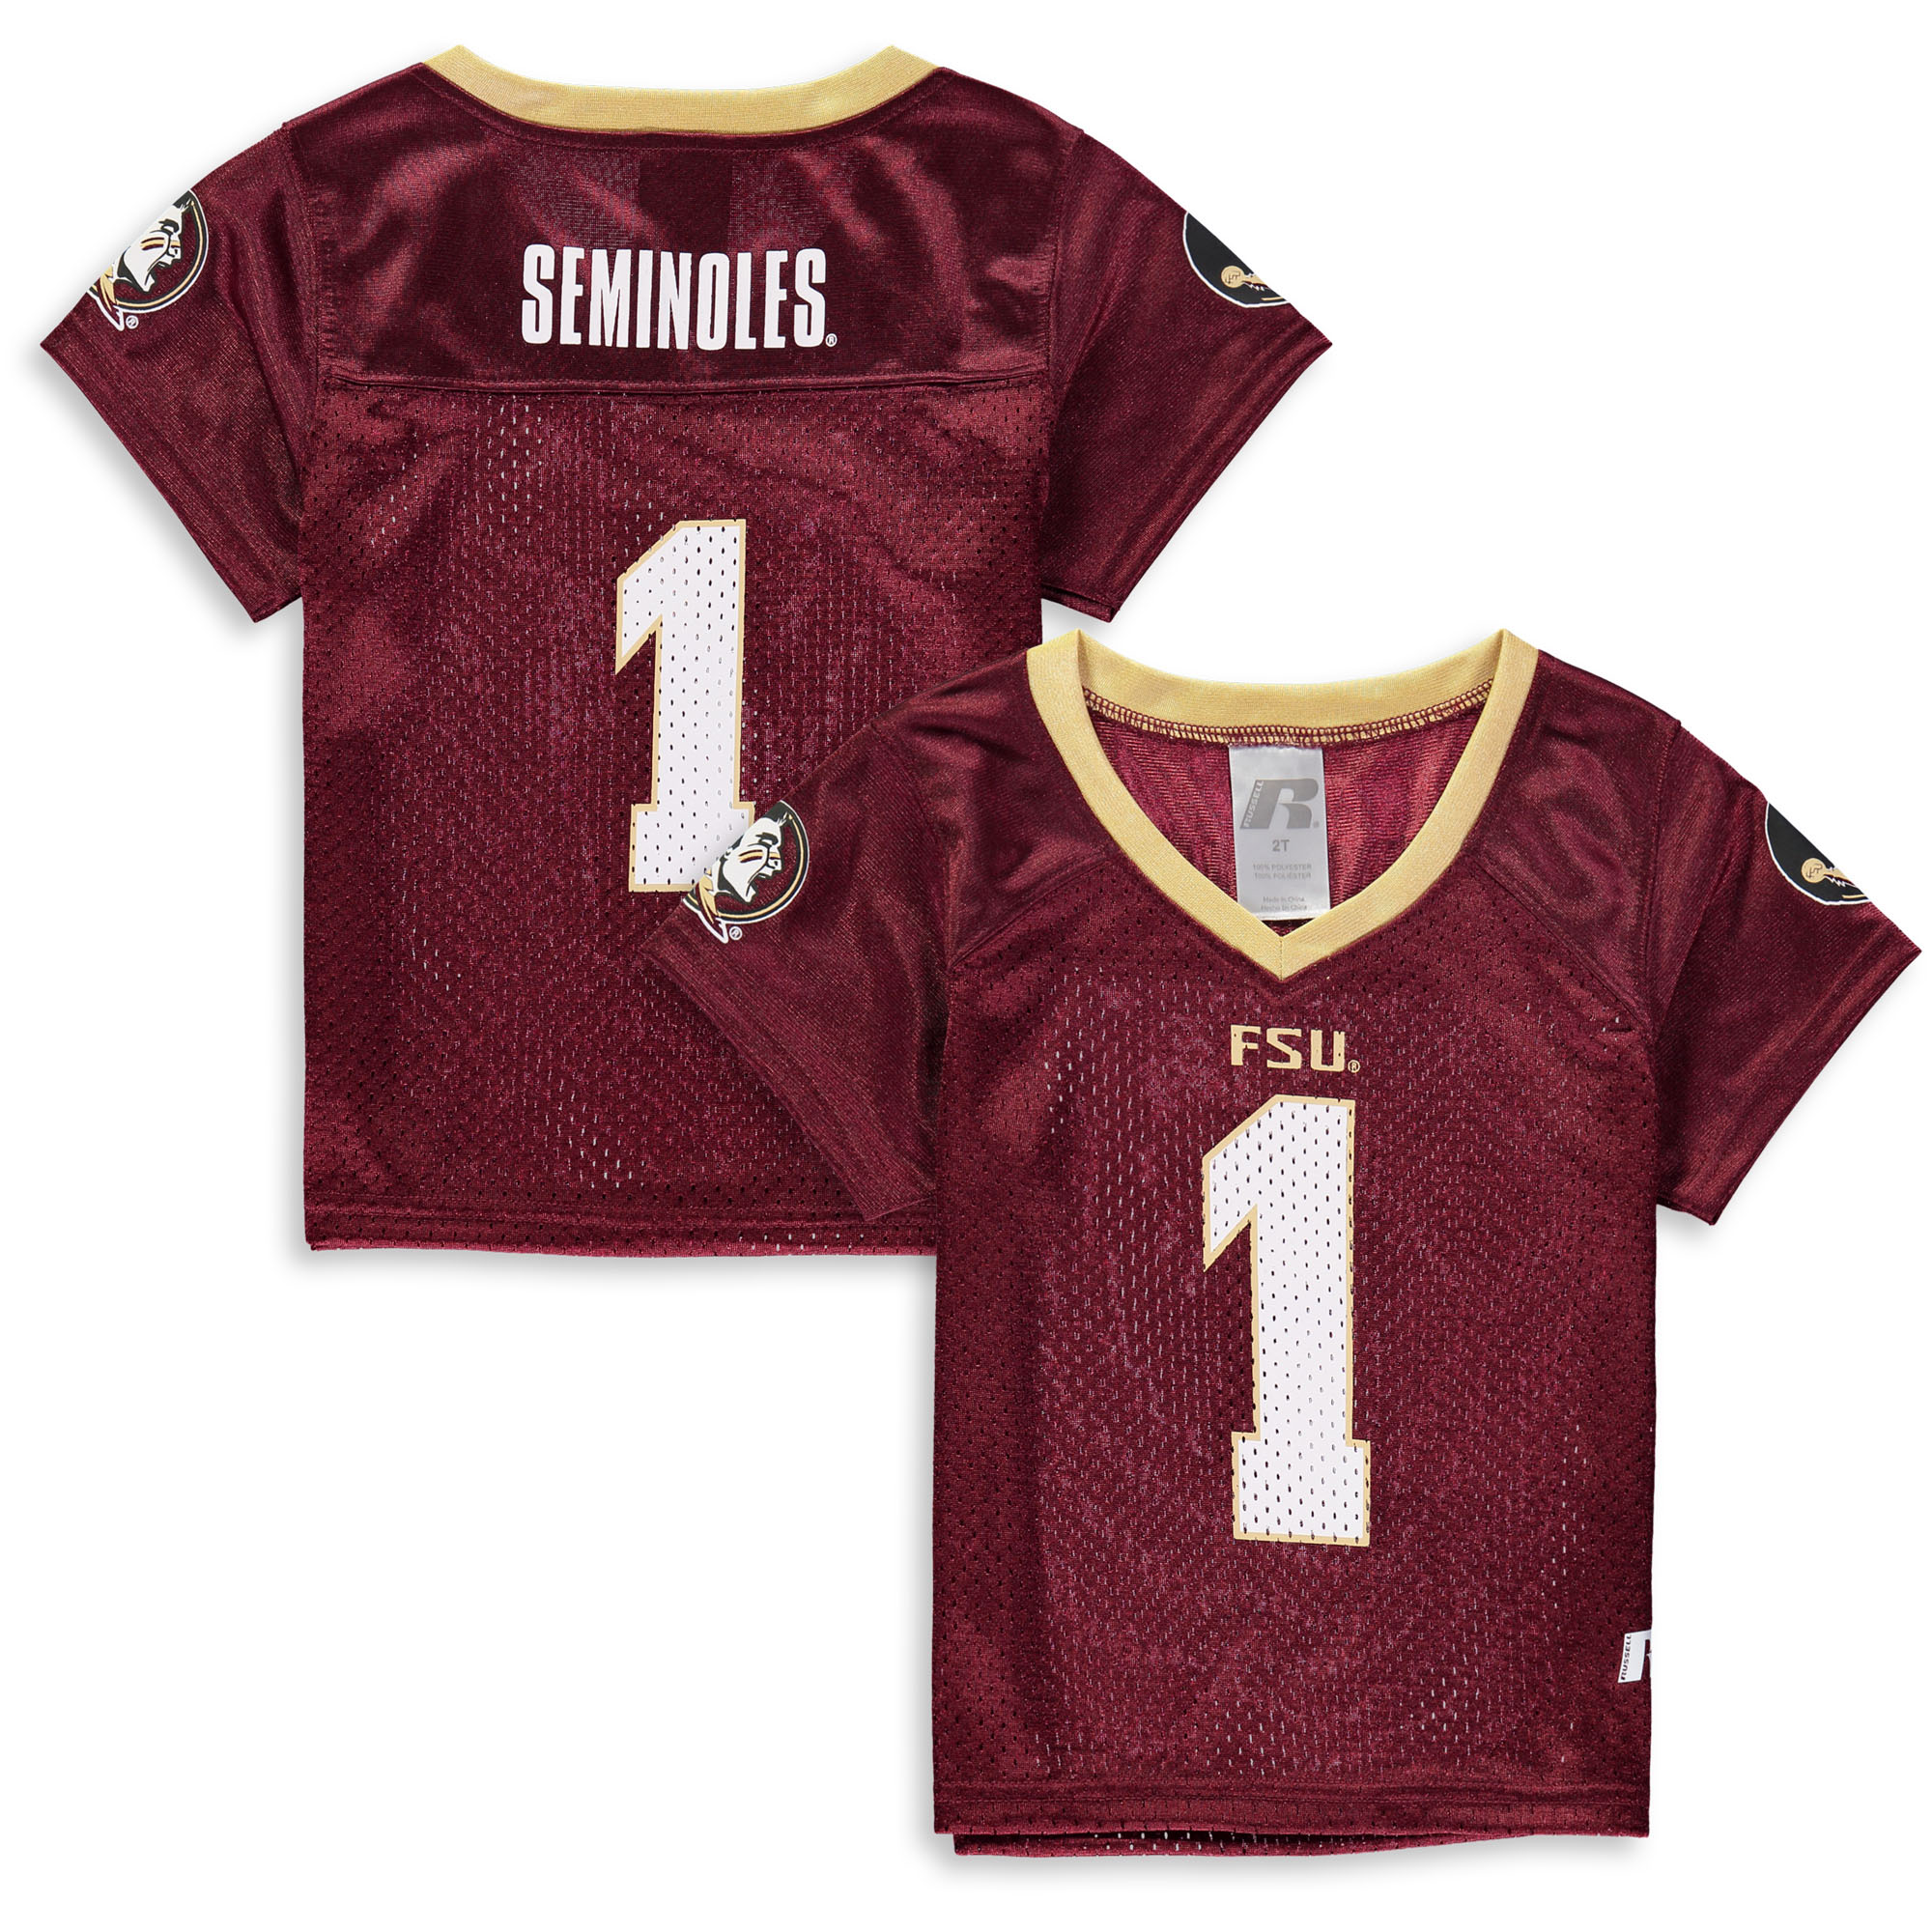 Toddler Russell Garnet Florida State Seminoles Replica Football Jersey